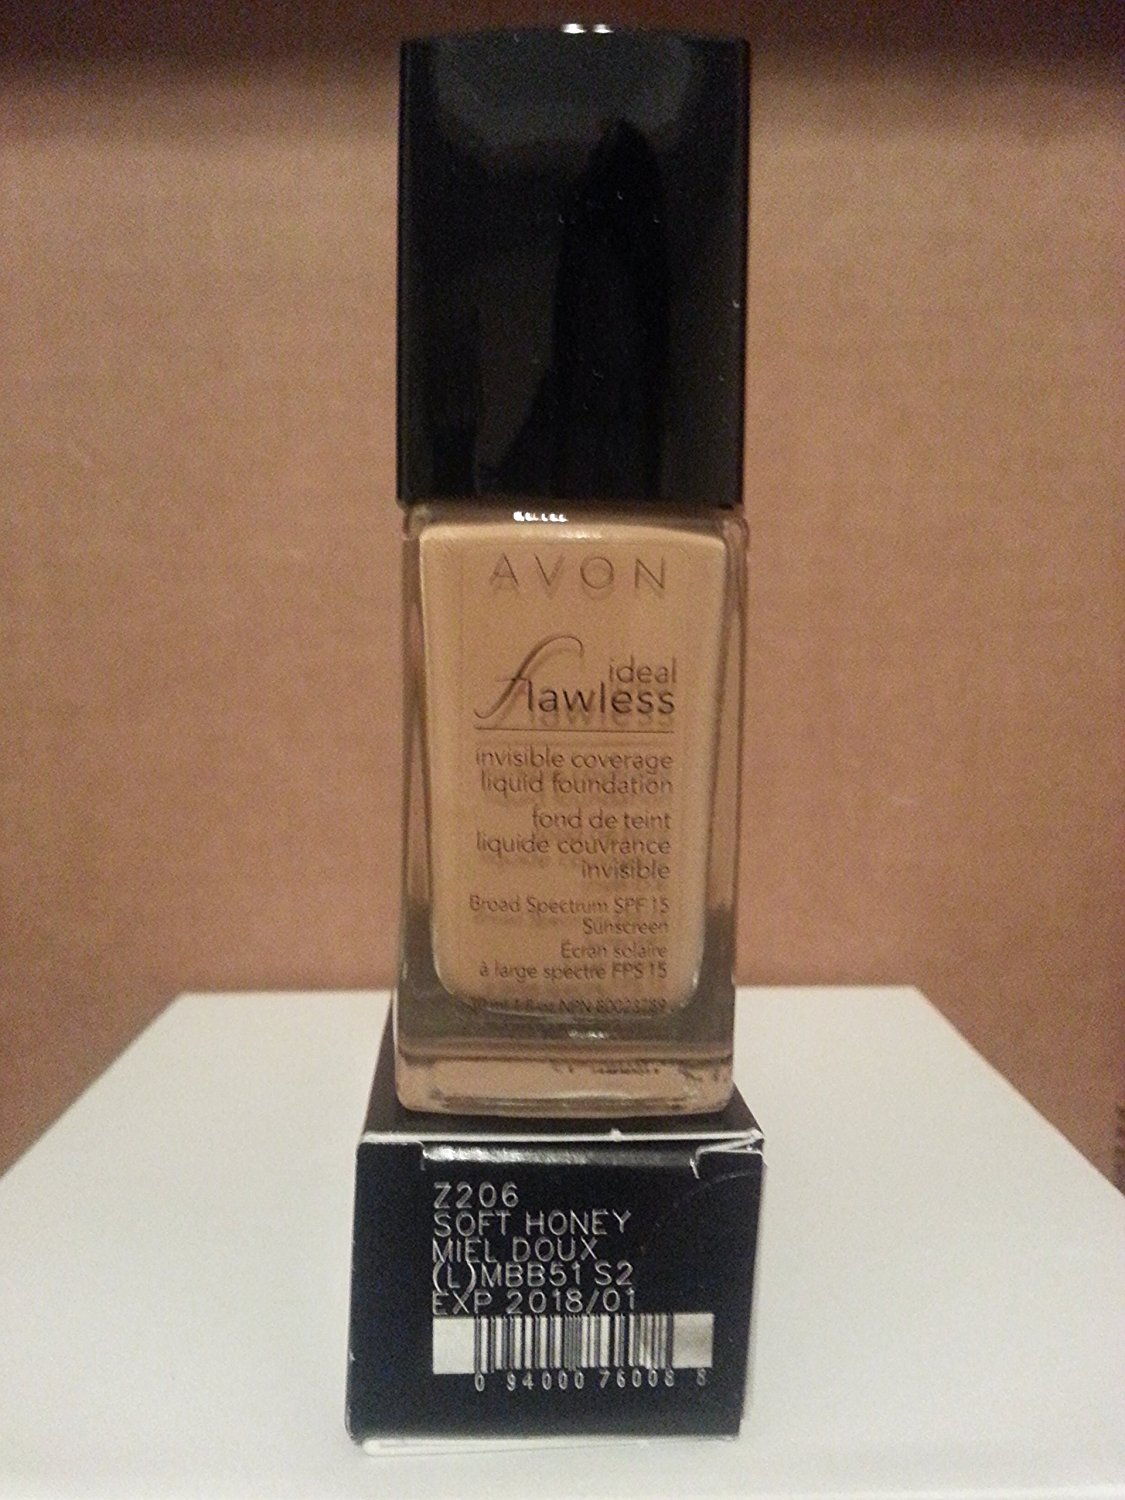 Avon Ideal Flawless Invisible Coverage Liquid Foundation SOFT HONEY